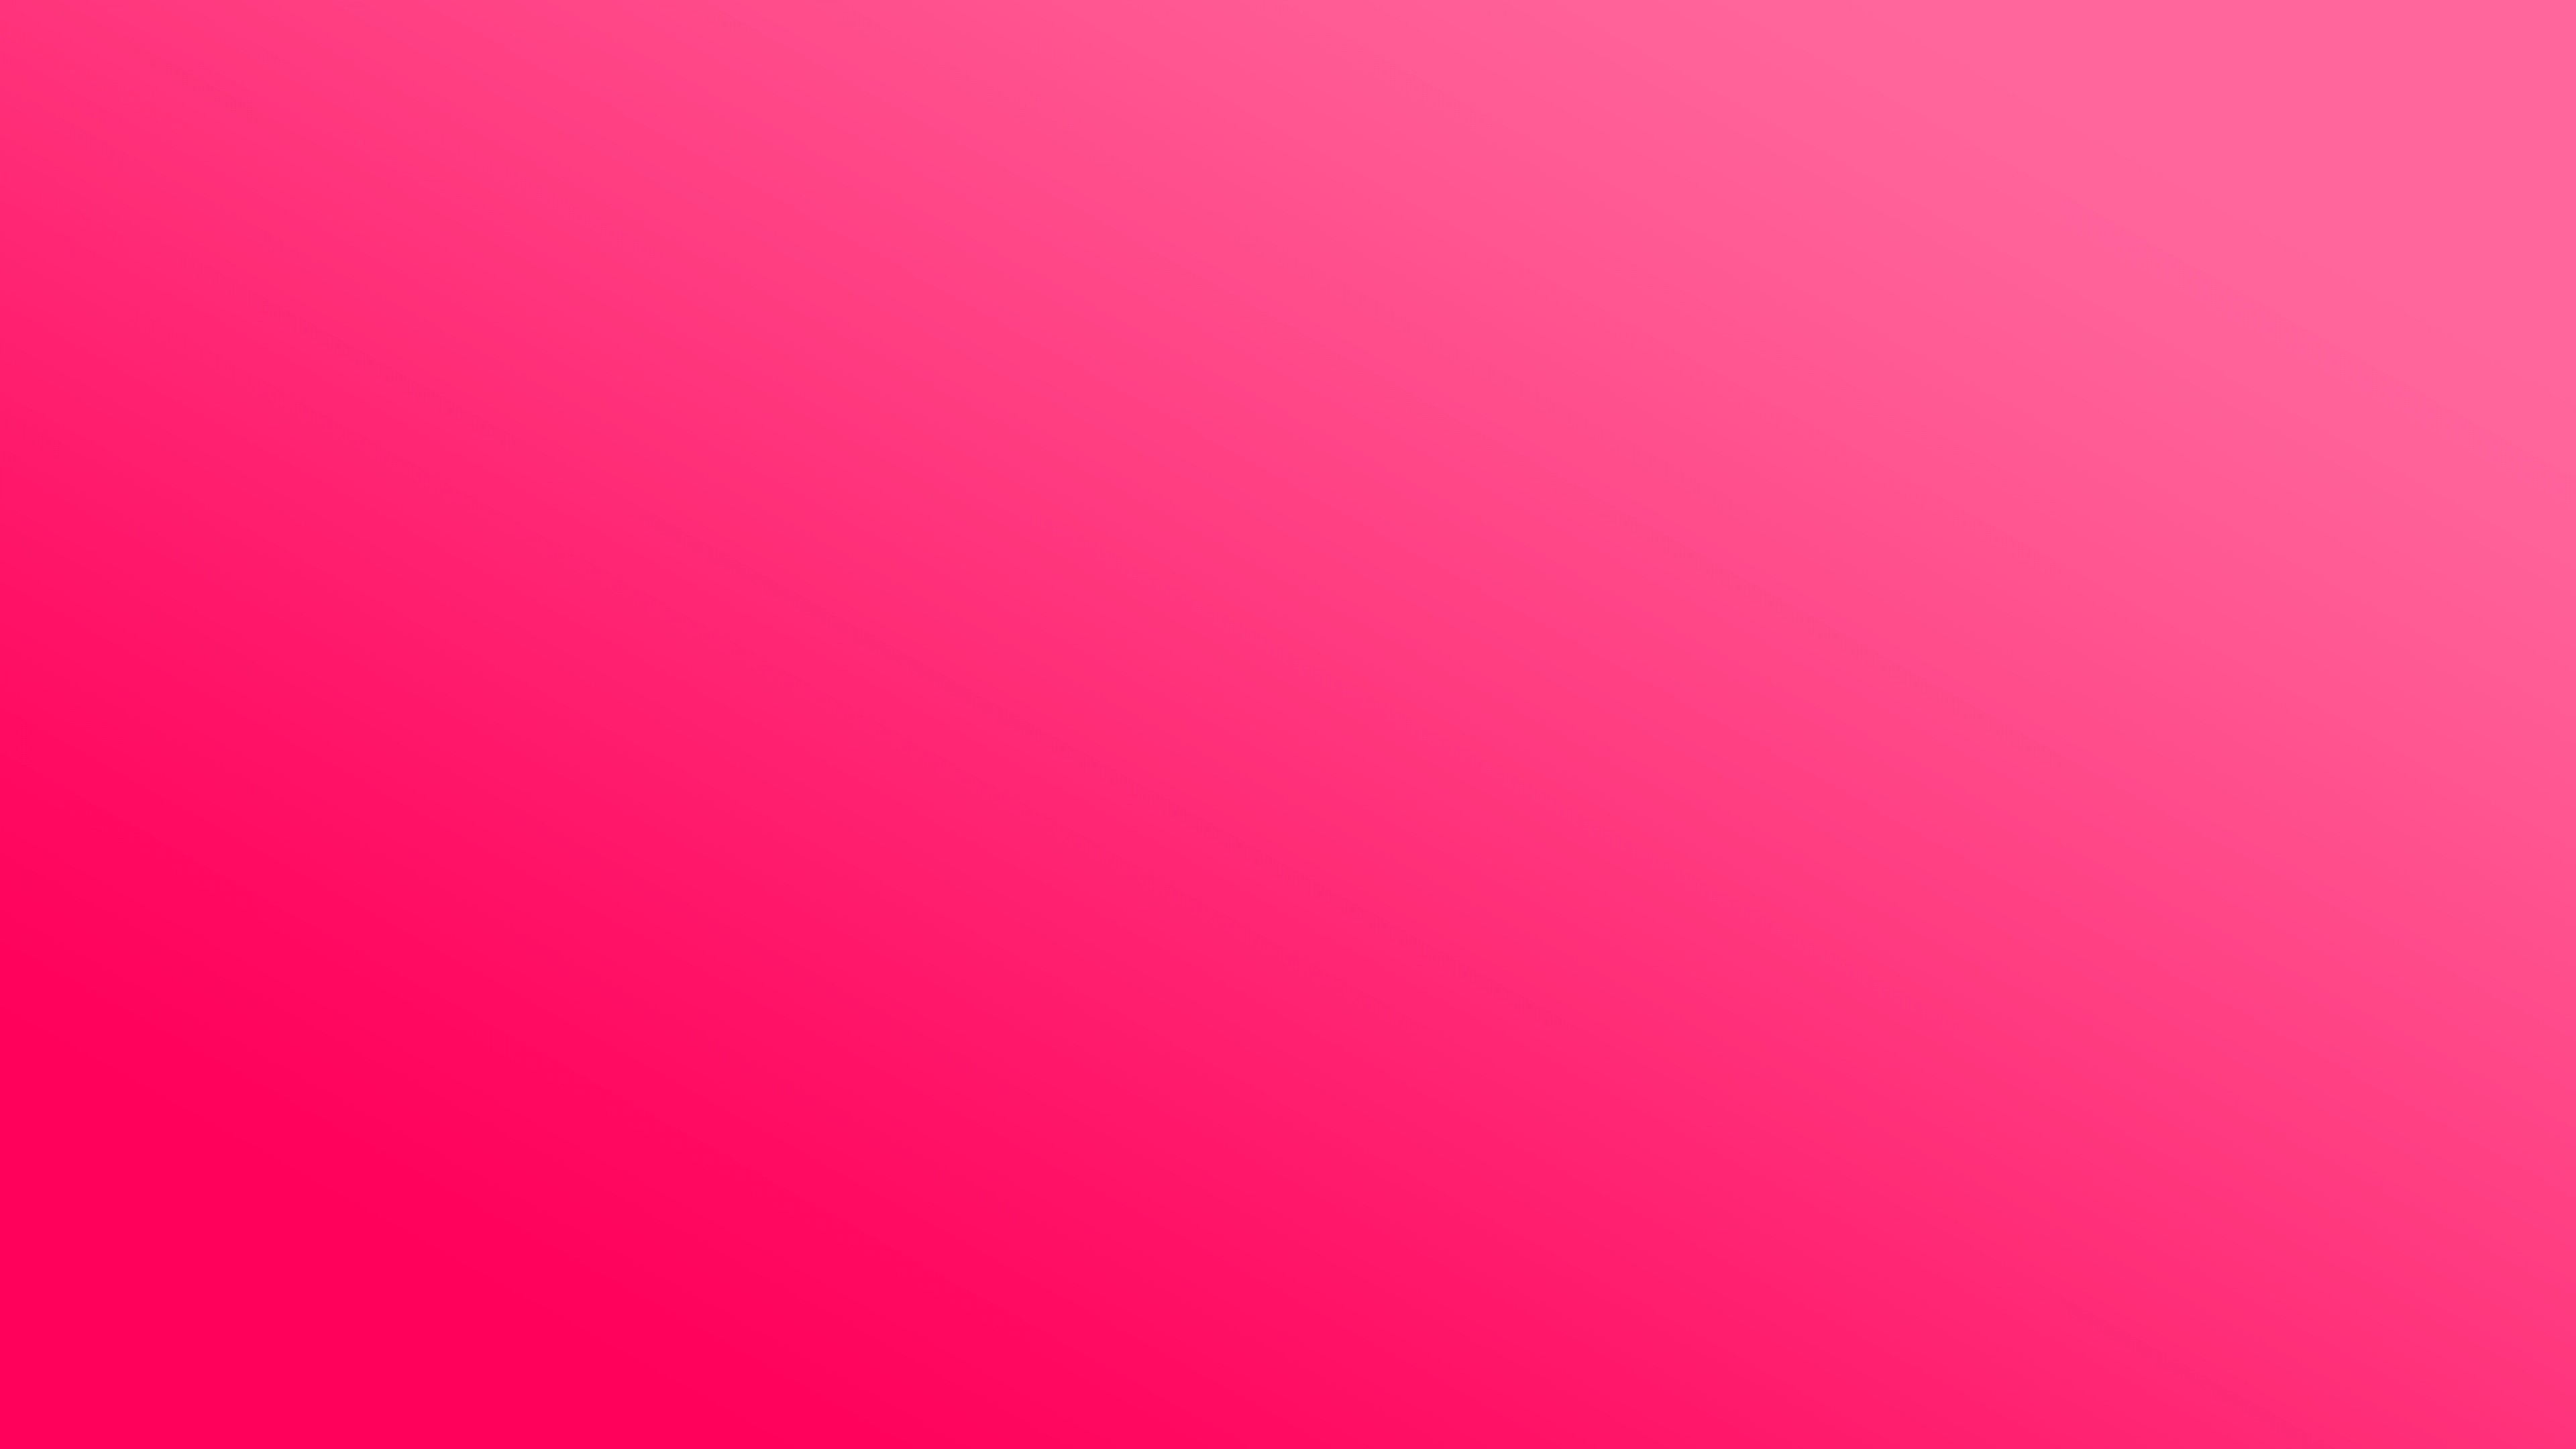 Pink Color Wallpapers (70+ images)